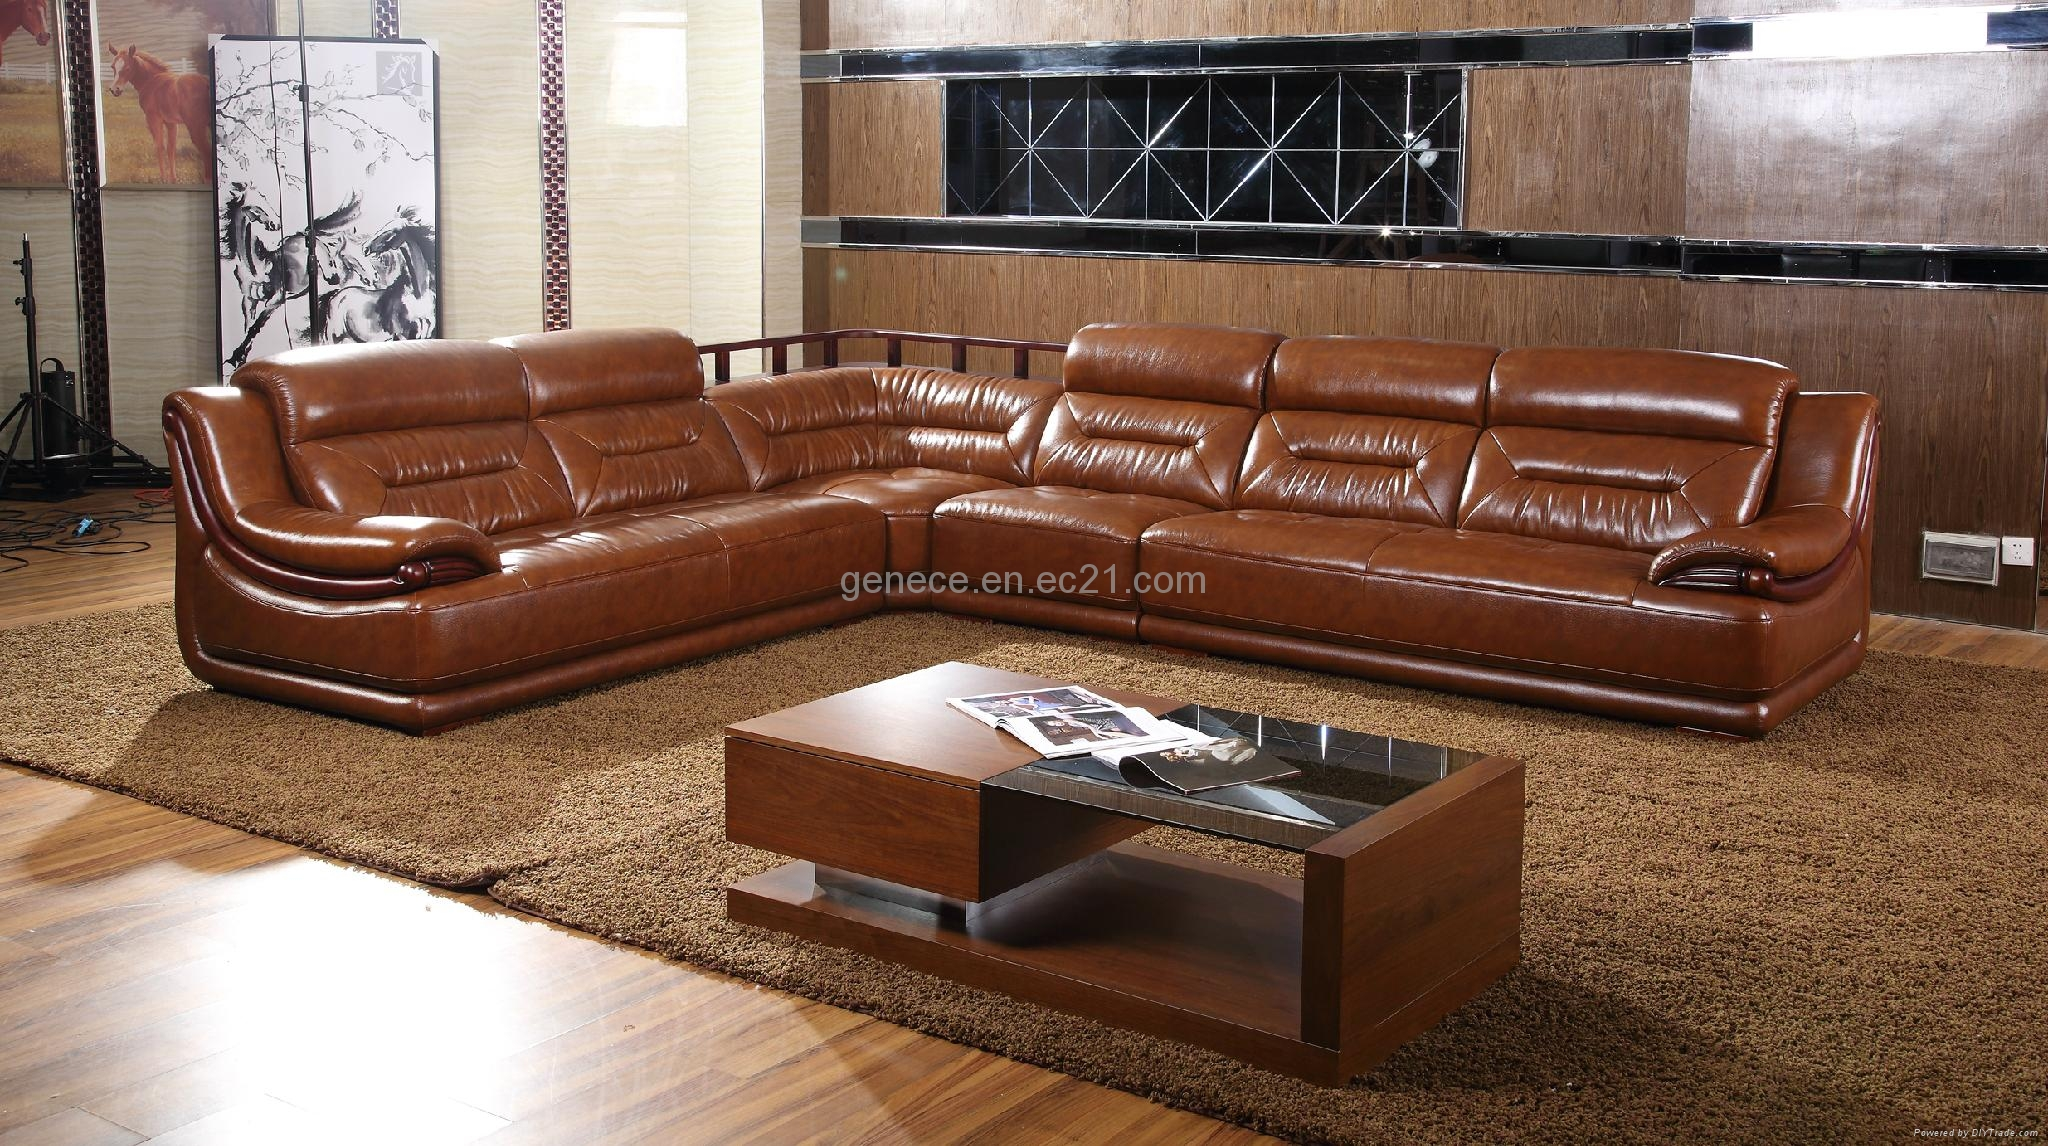 Best Quality Wooden Sofa ~ Top grain cow leather sofa wooden secitonal quality